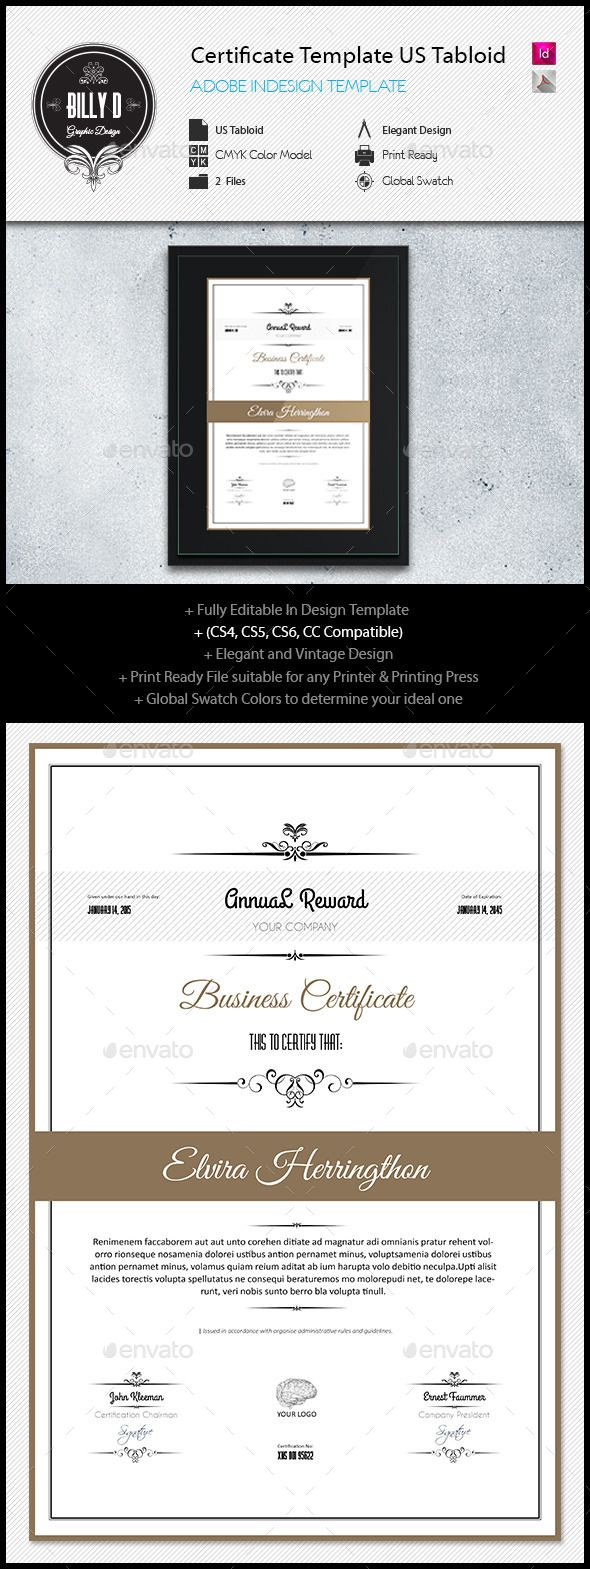 certificate template us tabloid certificate template indesign indd download here http